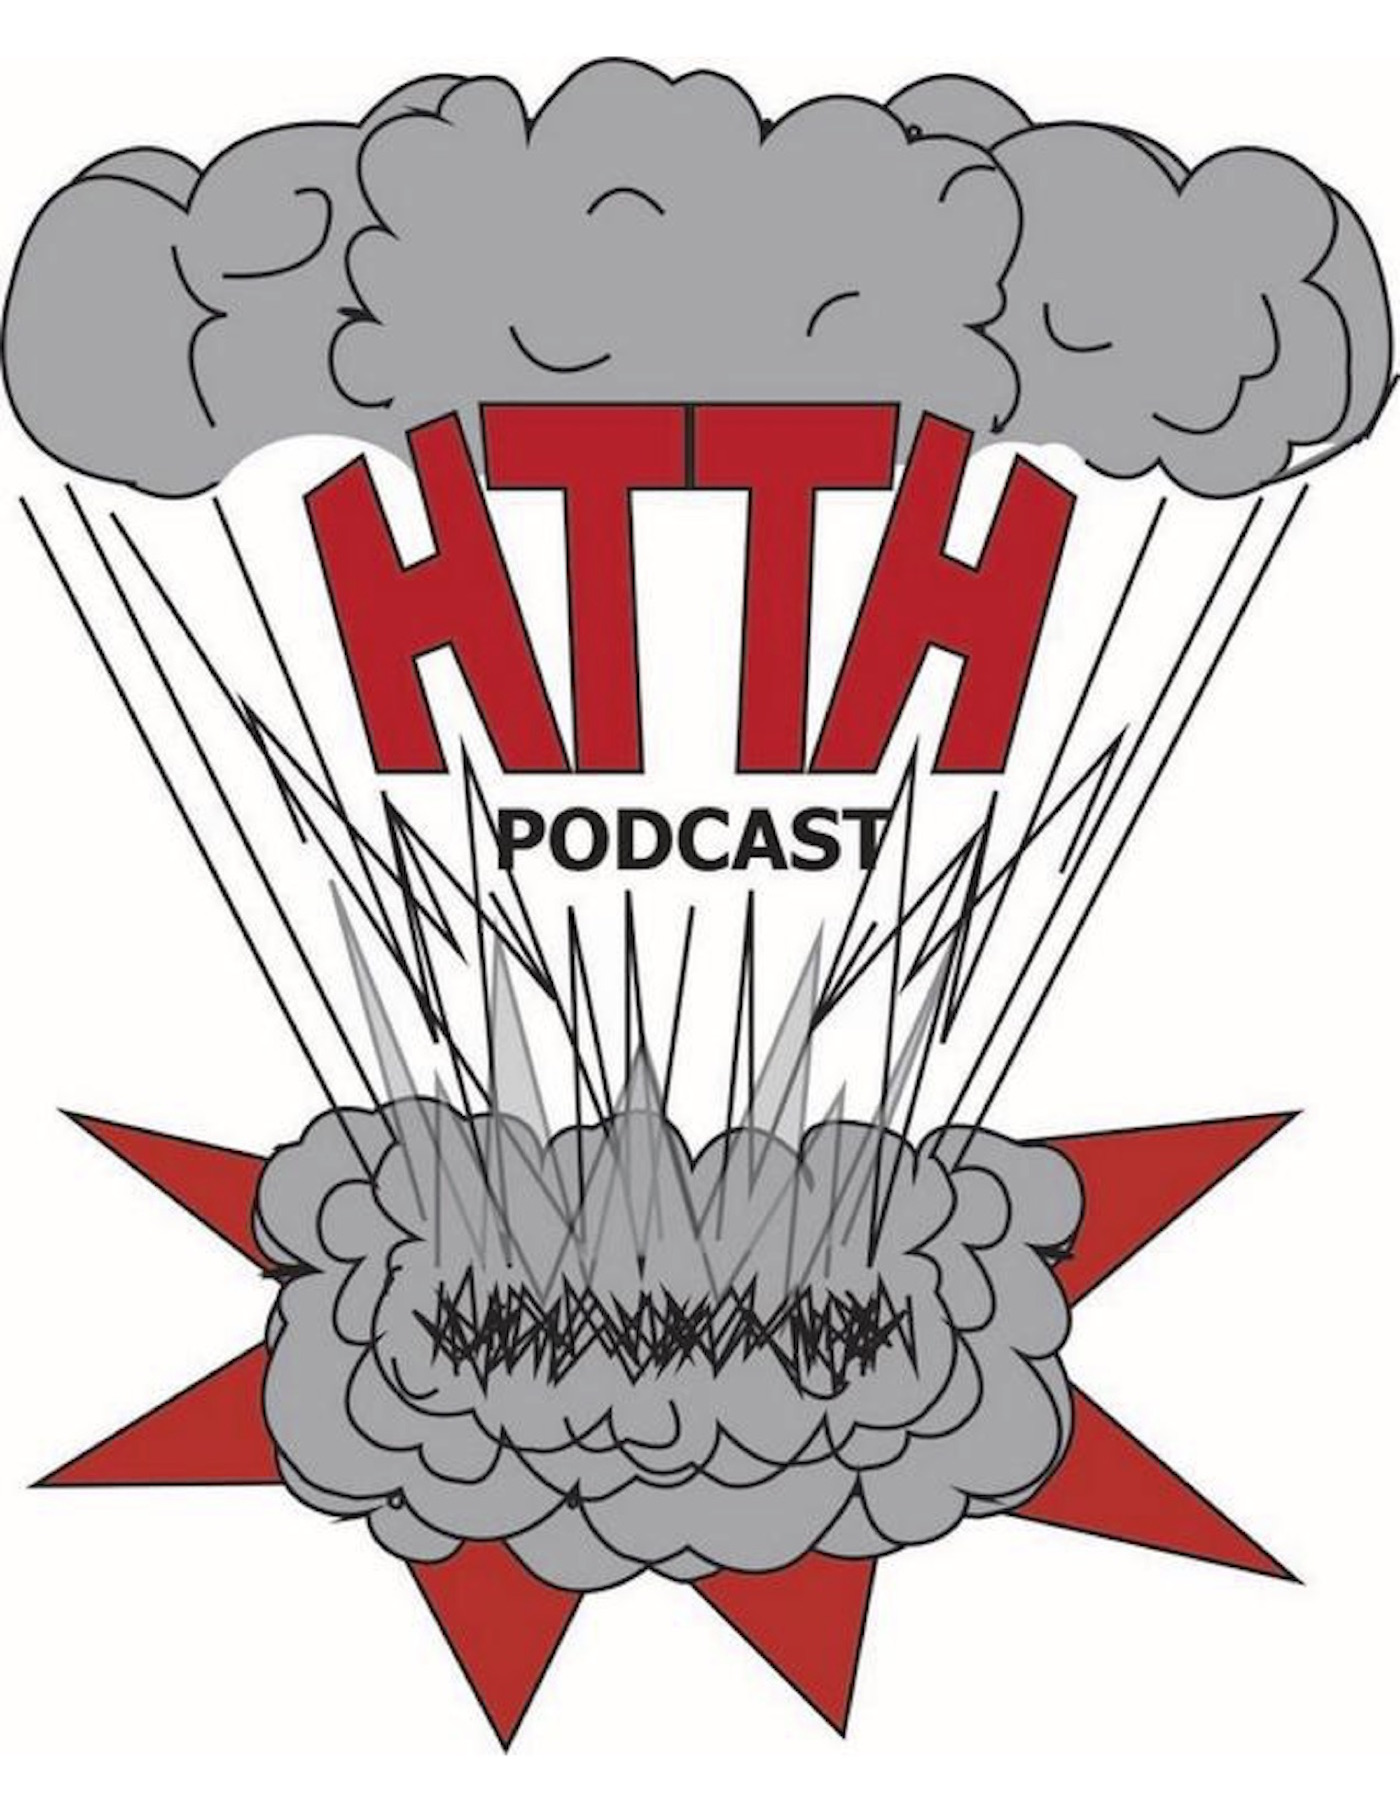 TheHTTHPodcast